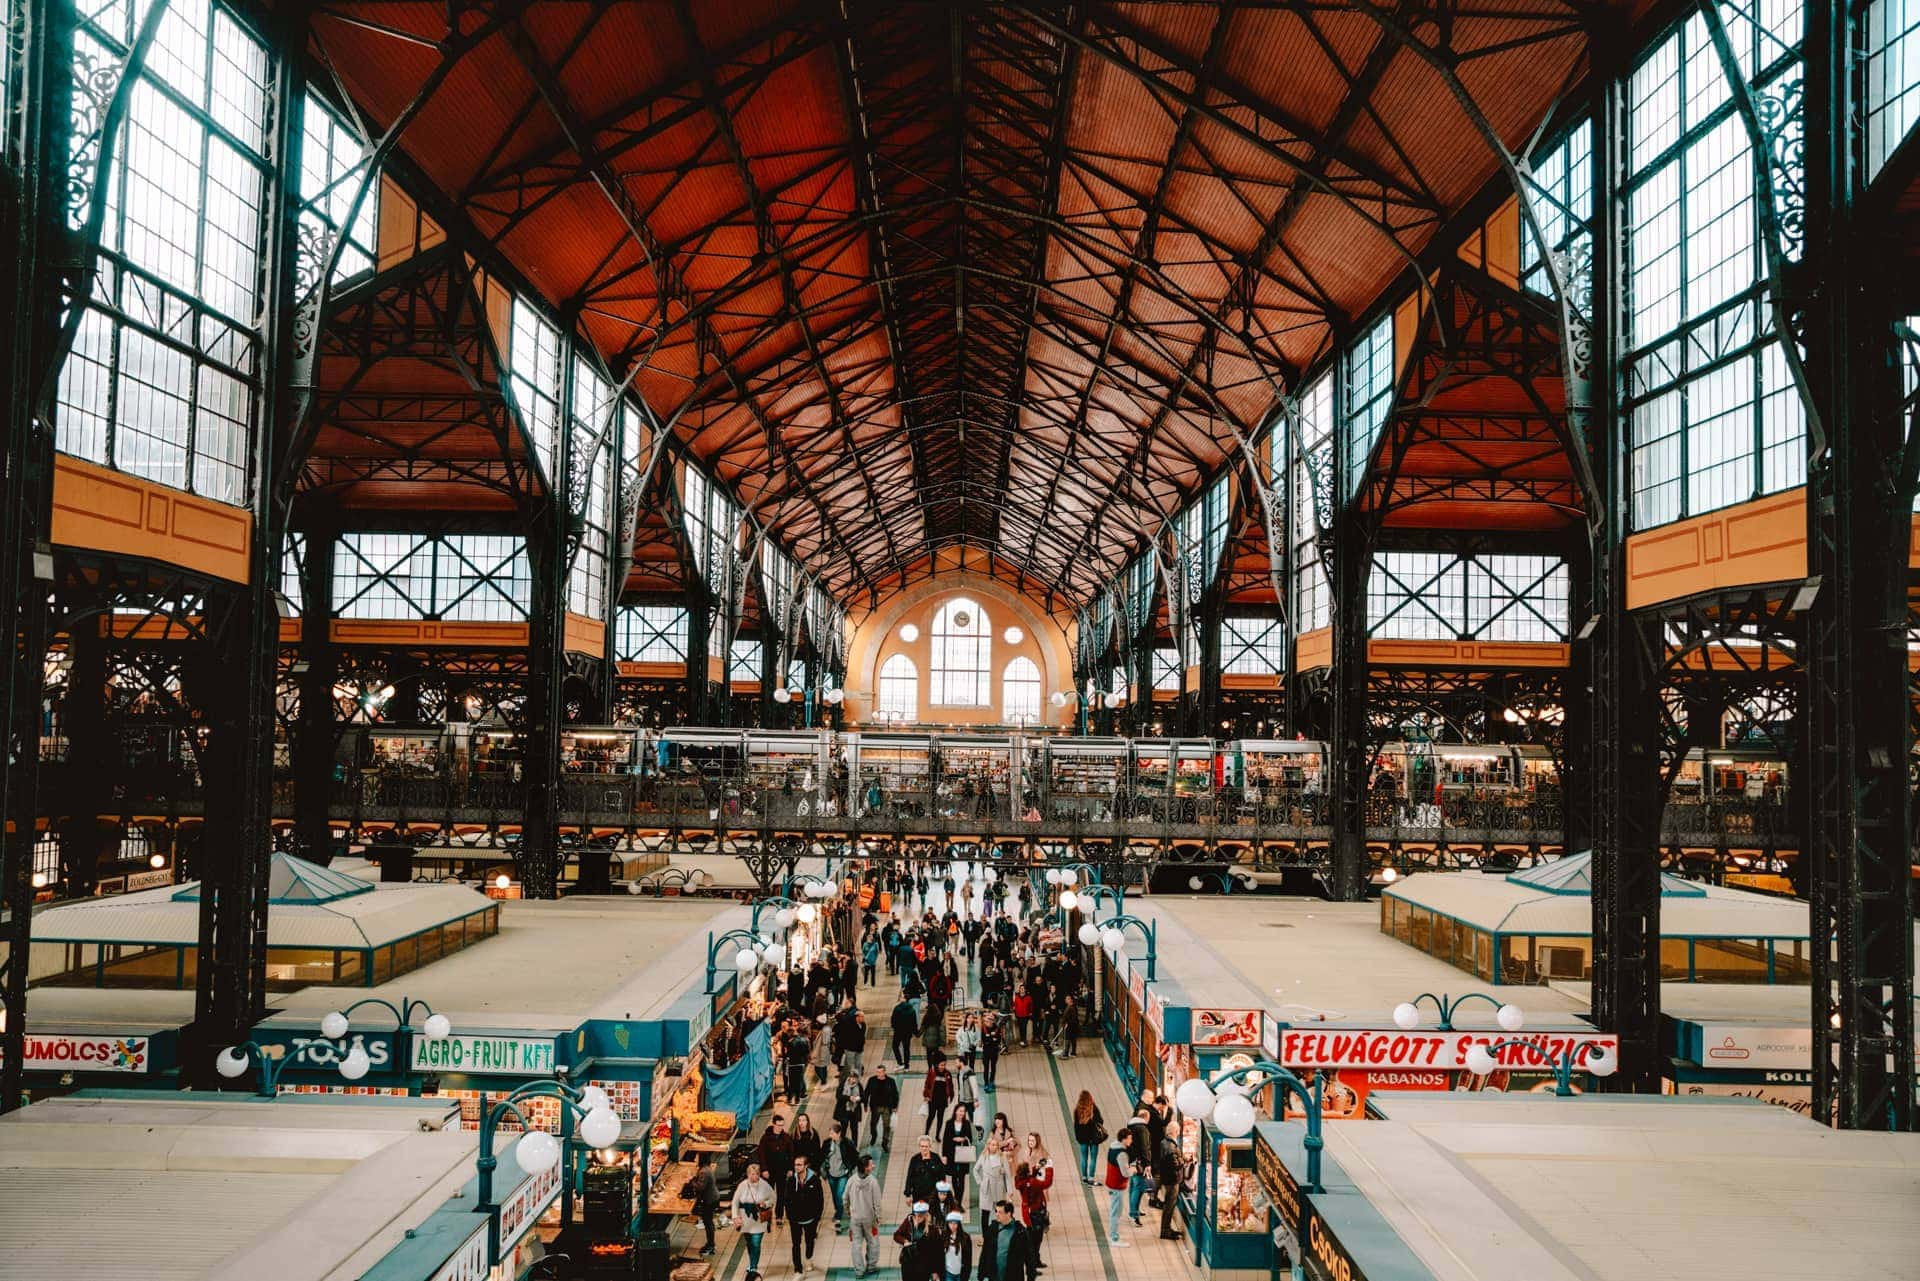 things to do budapest Great Market Hall